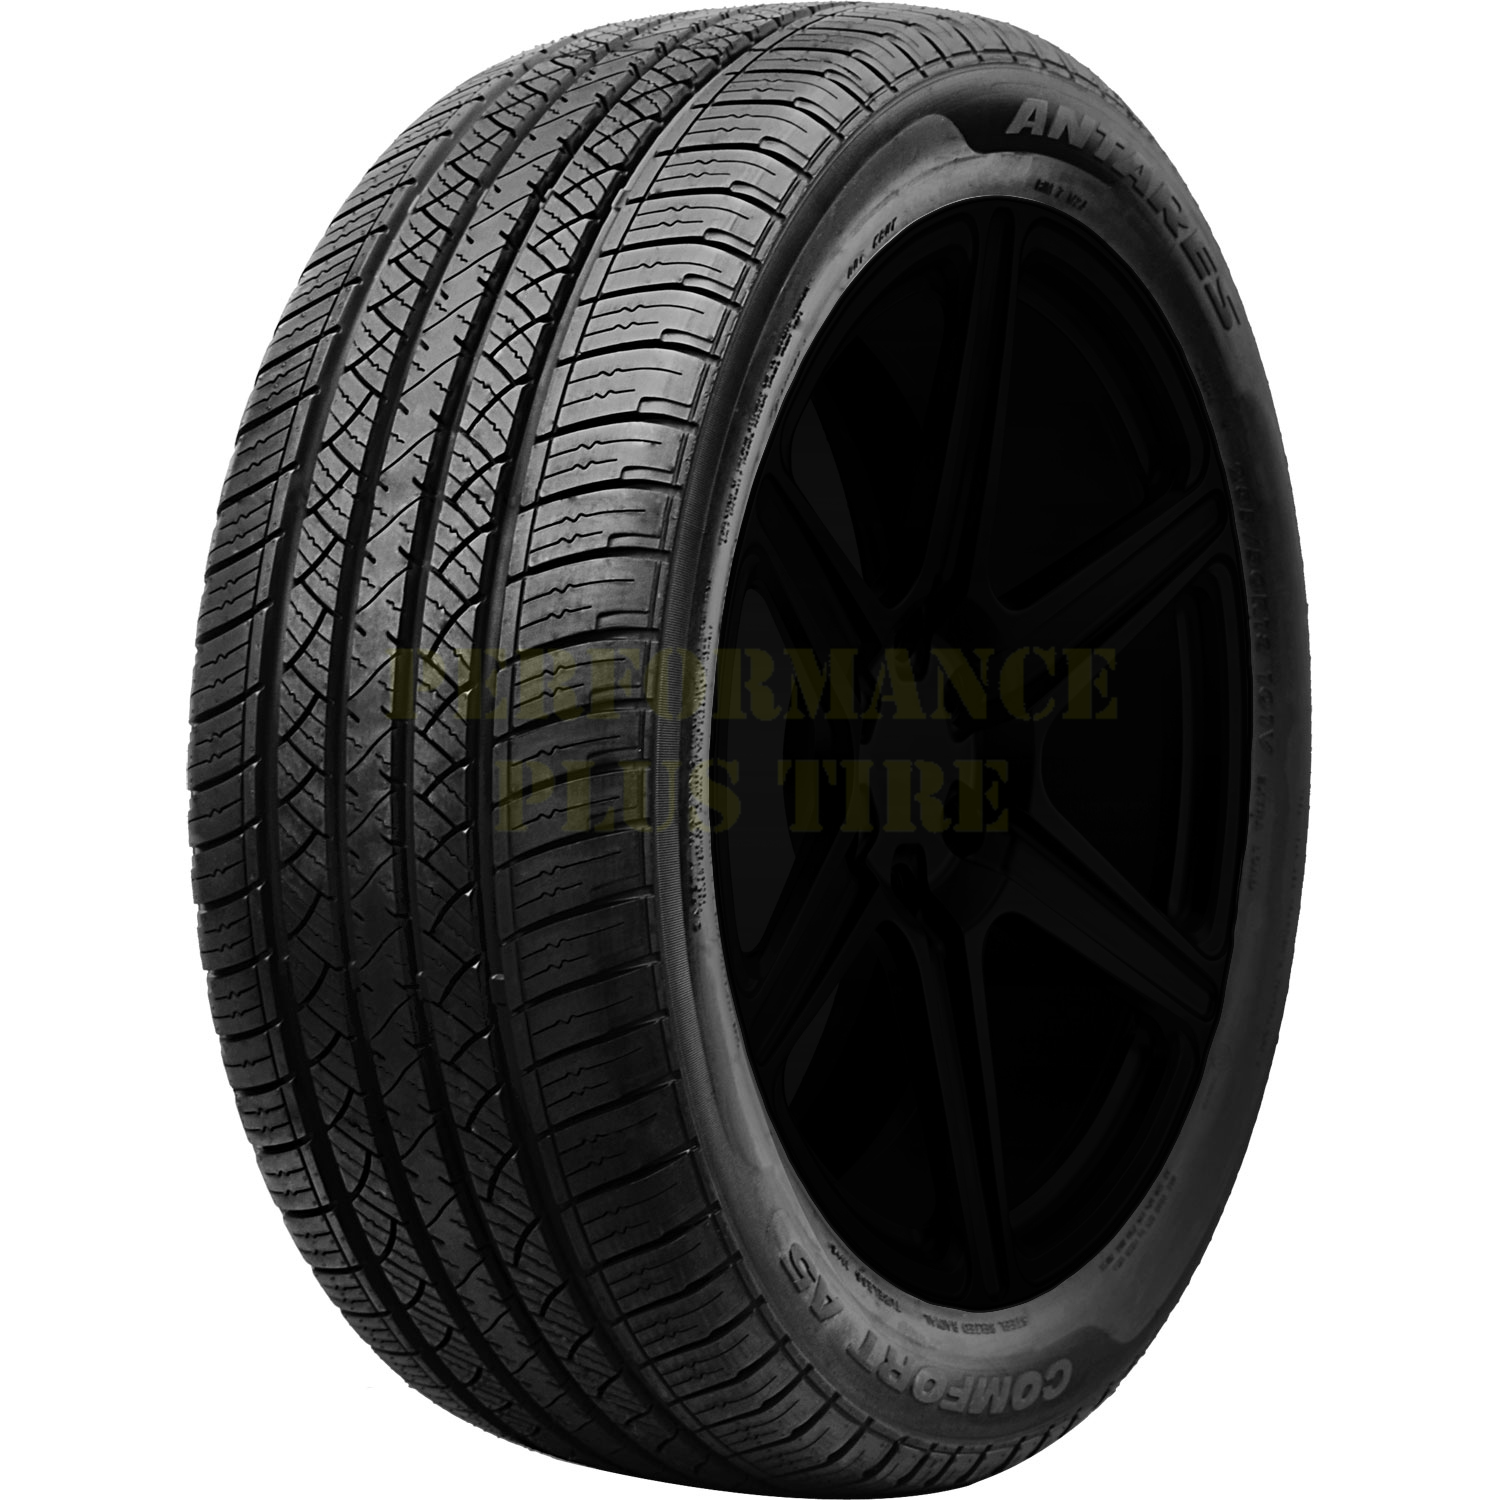 Antares Tires Comfort A5 Passenger All Season Tire - 285/65R17 116S